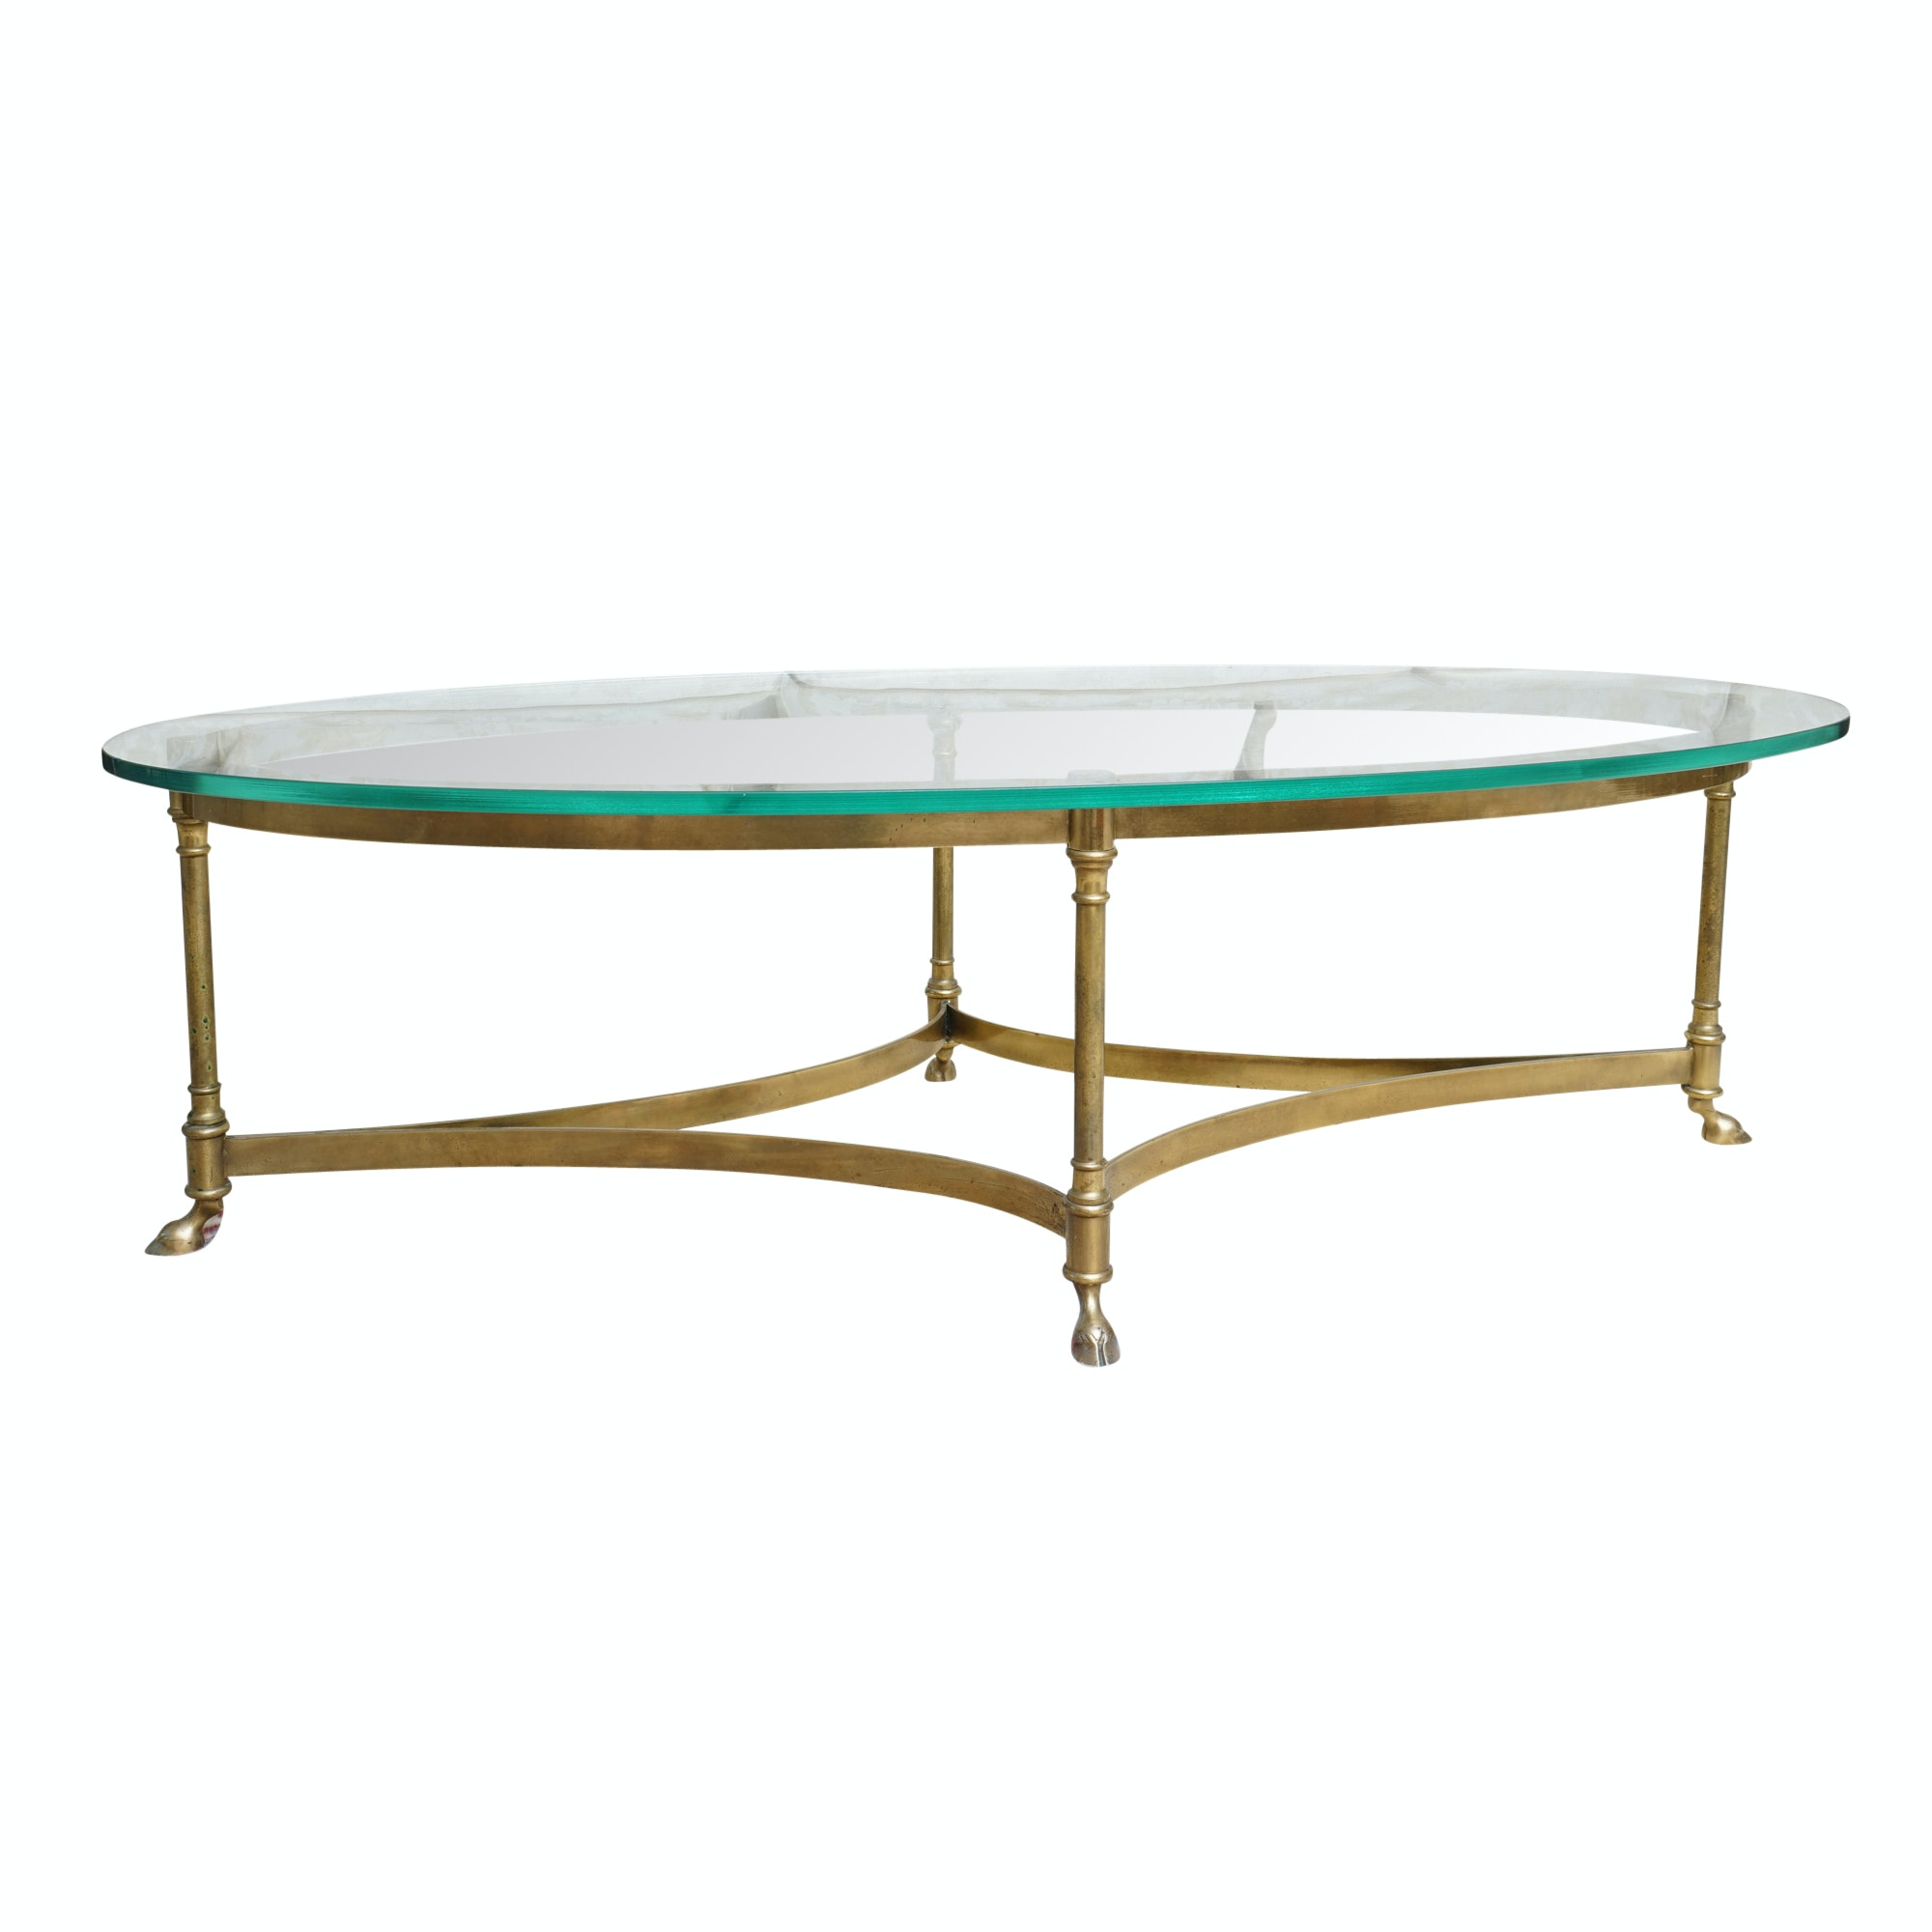 Hollywood Regency Style Oval Glass Top Coffee Table with Hoof Feet